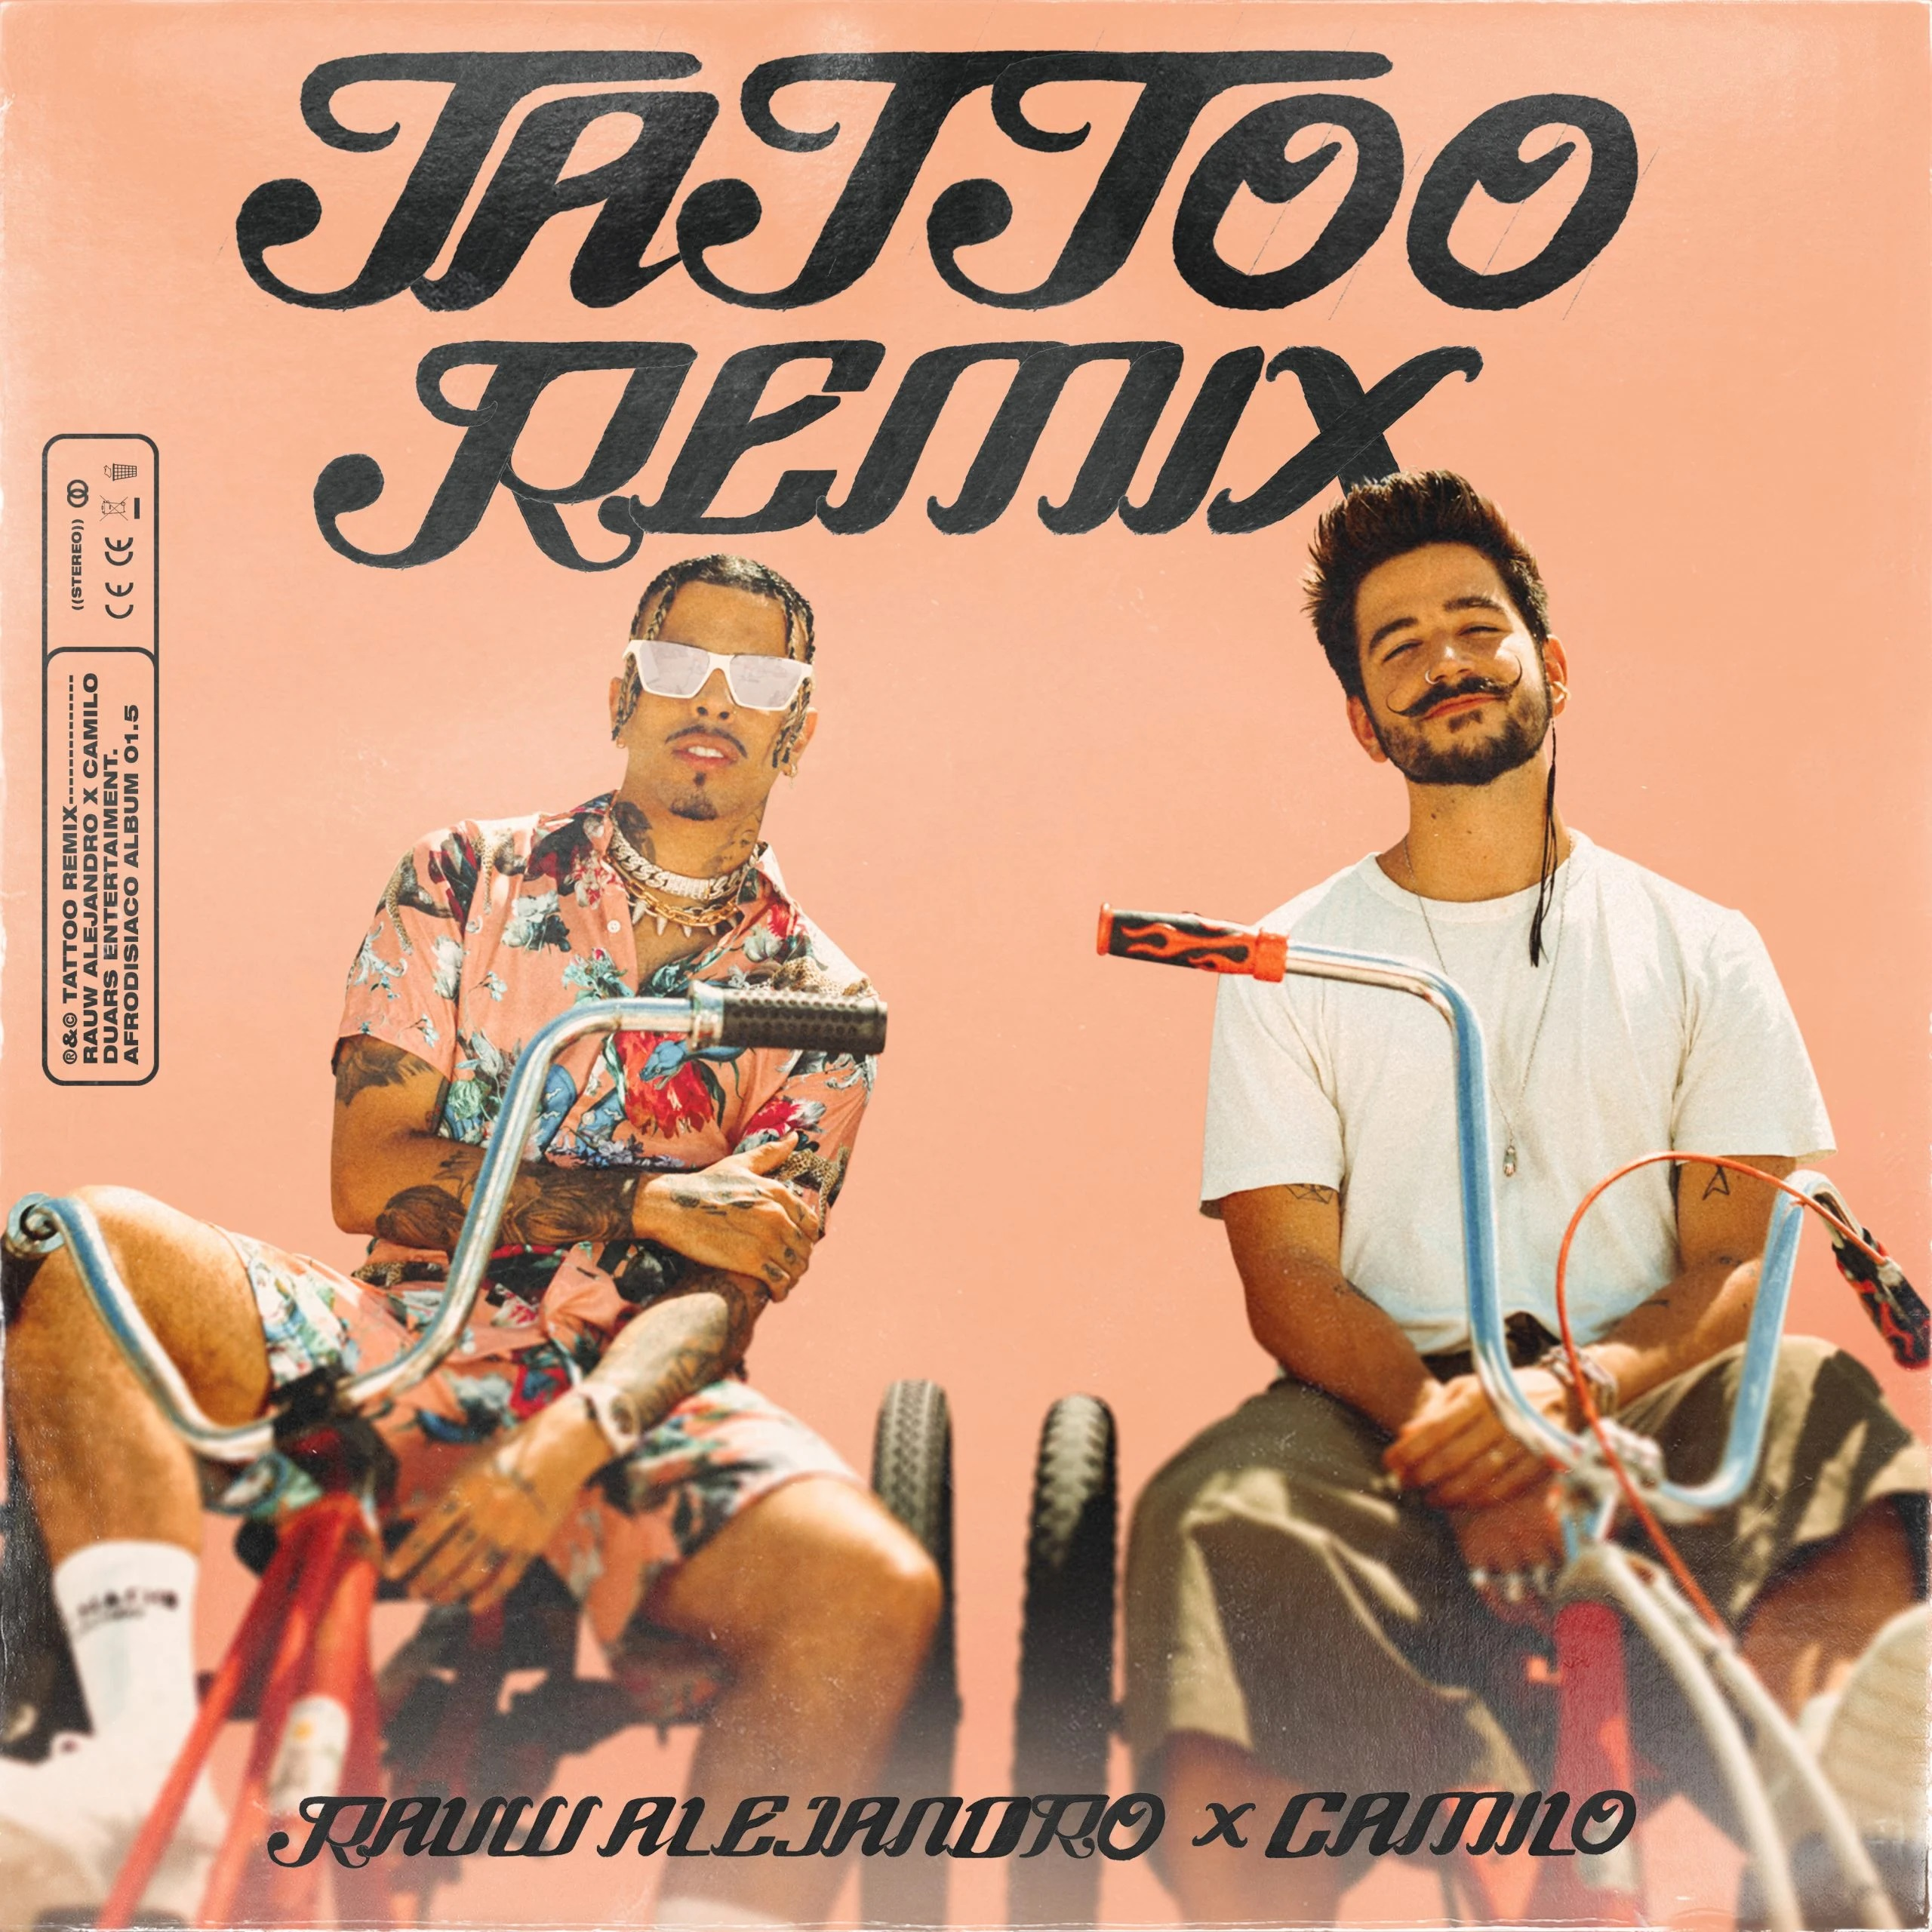 Rauw Alejandro Ft. Camilo - Tattoo (Official Remix)